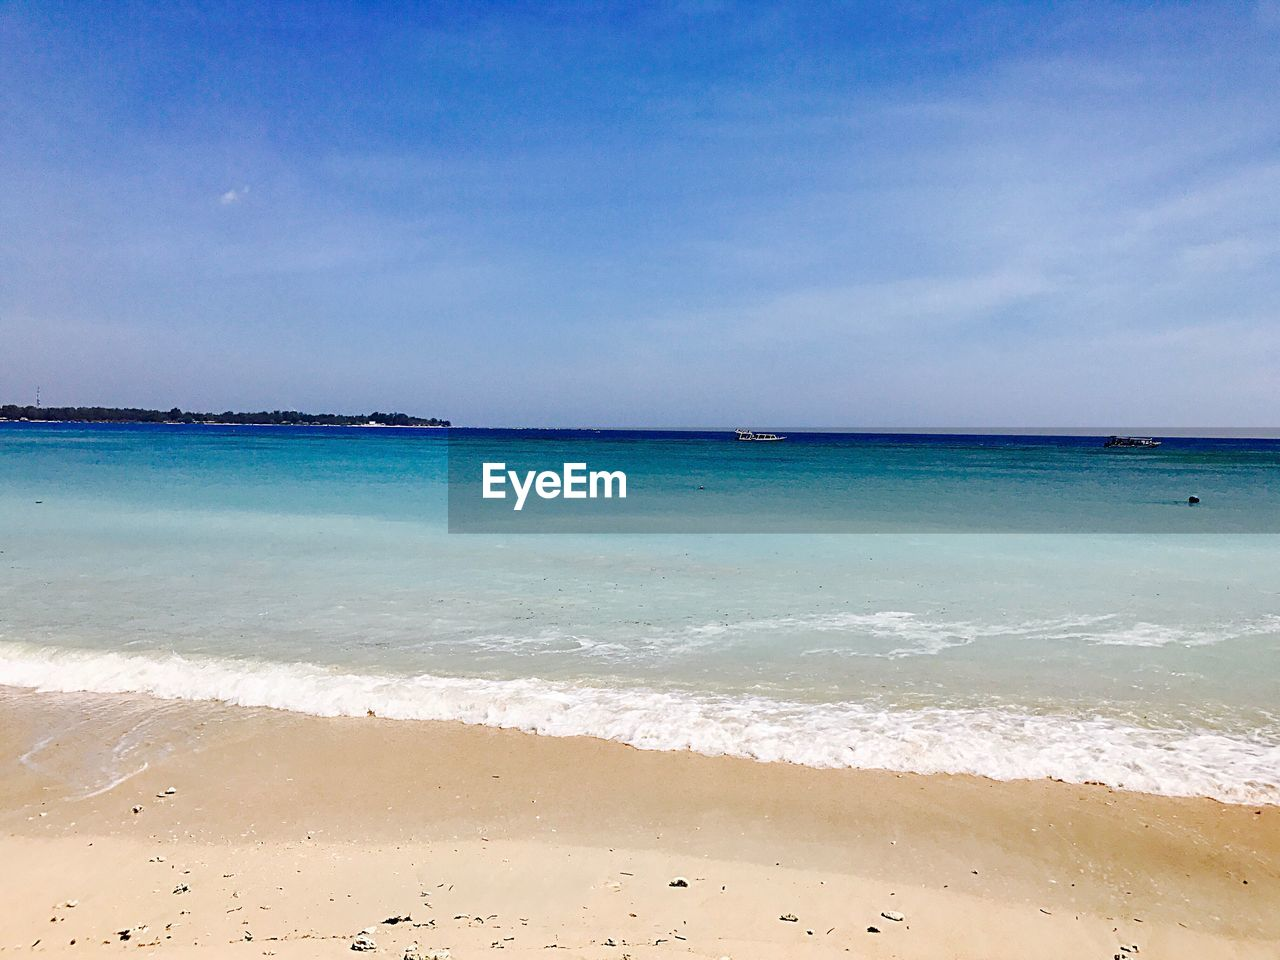 beach, sea, land, water, sky, beauty in nature, scenics - nature, horizon over water, horizon, sand, tranquility, tranquil scene, cloud - sky, nature, idyllic, day, motion, non-urban scene, outdoors, turquoise colored